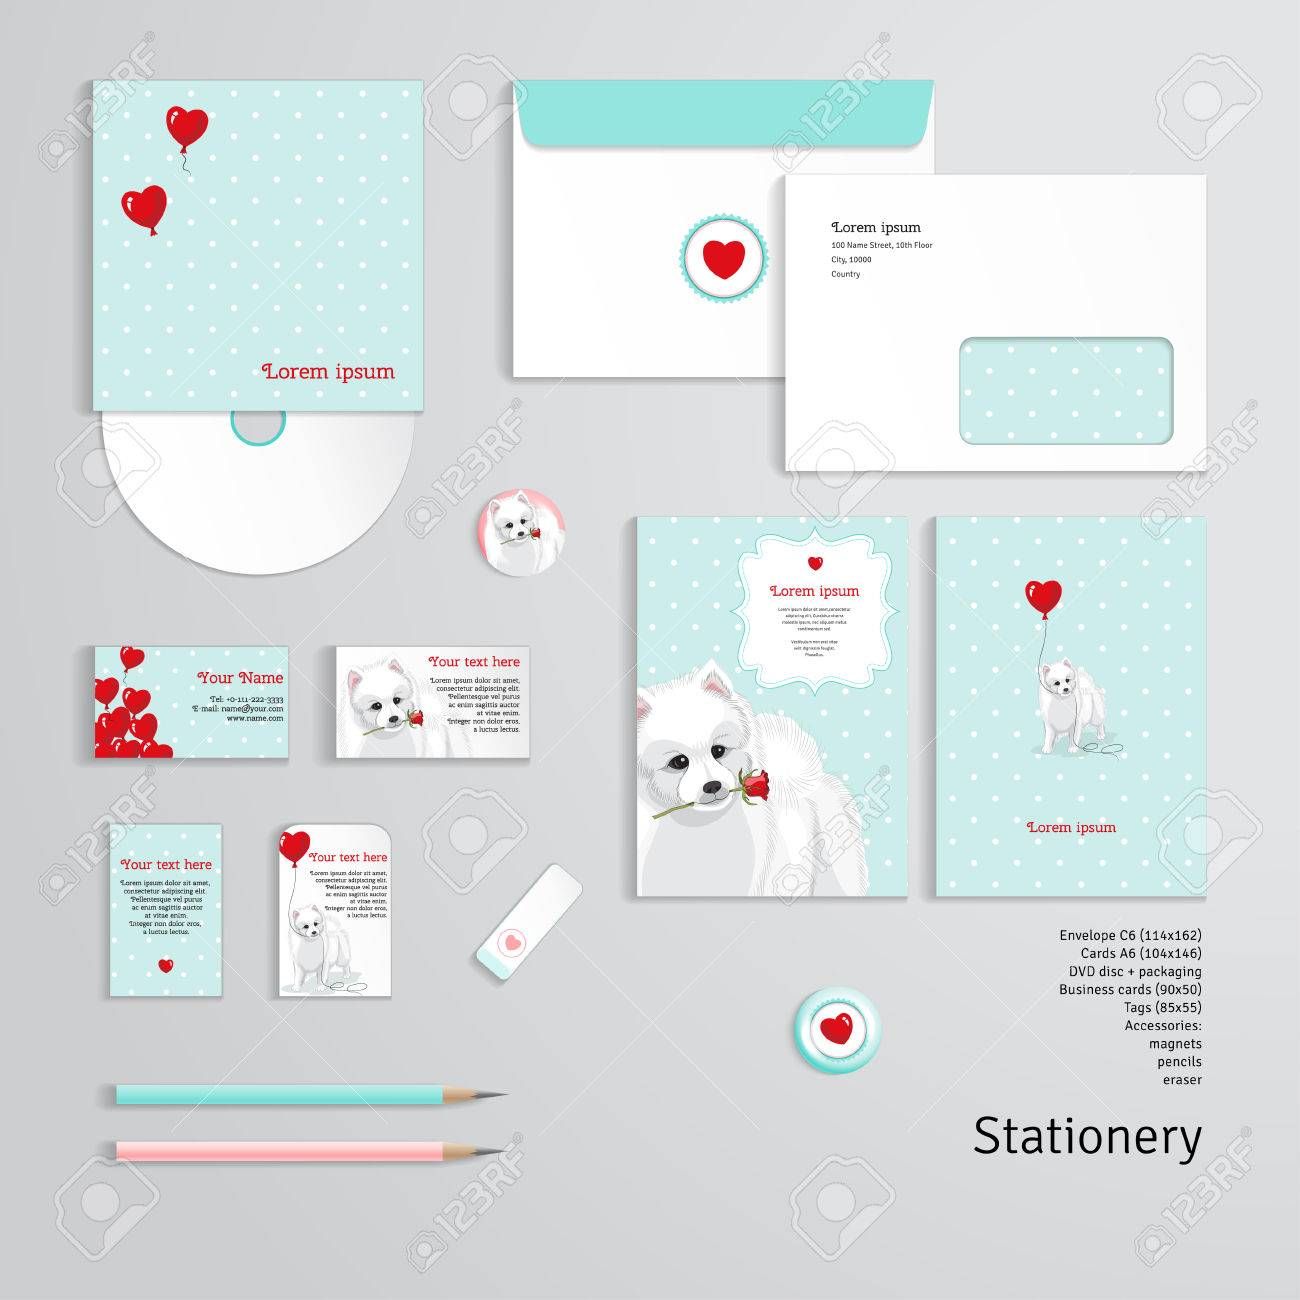 92+ Polka Dot Business Card Templates Free - Perfect House Cleaning ...